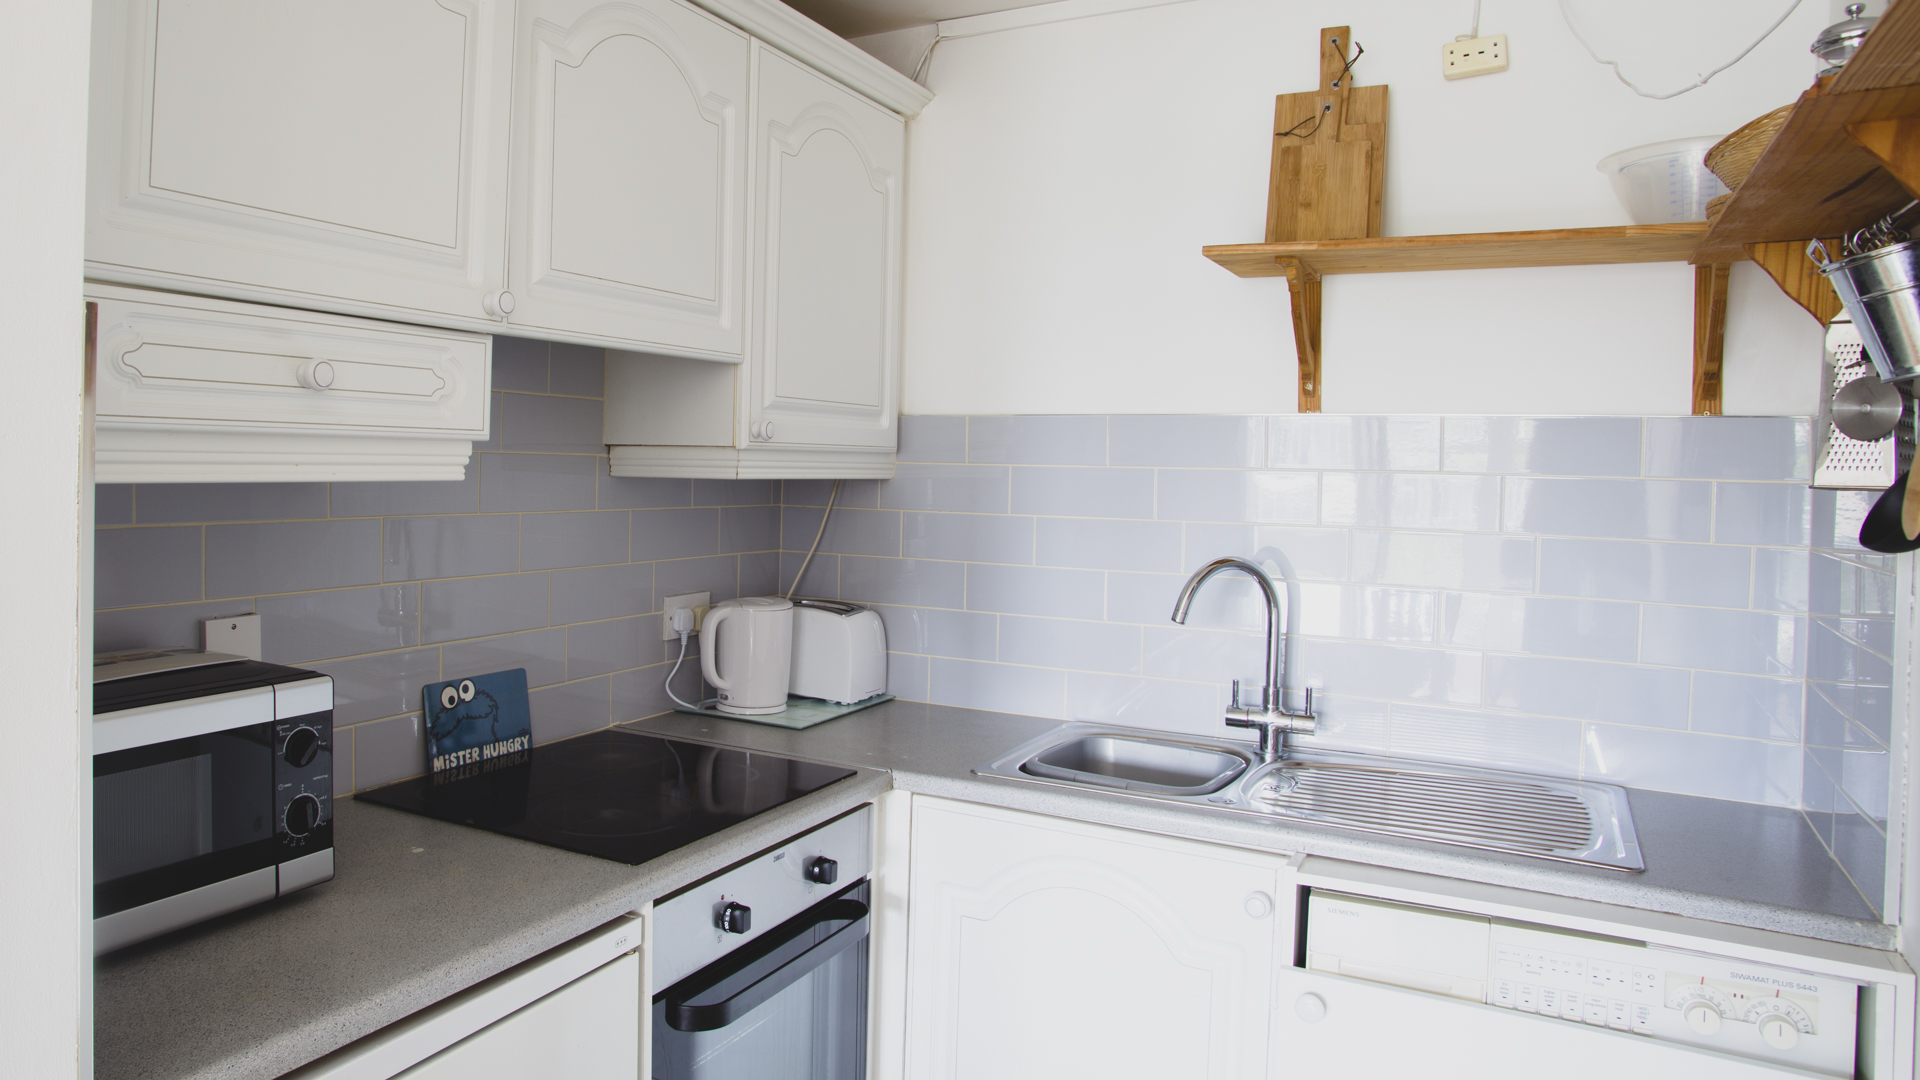 Kitchen at The Waterside Grand Canal Apartment, Grand Canal Dock, Dublin